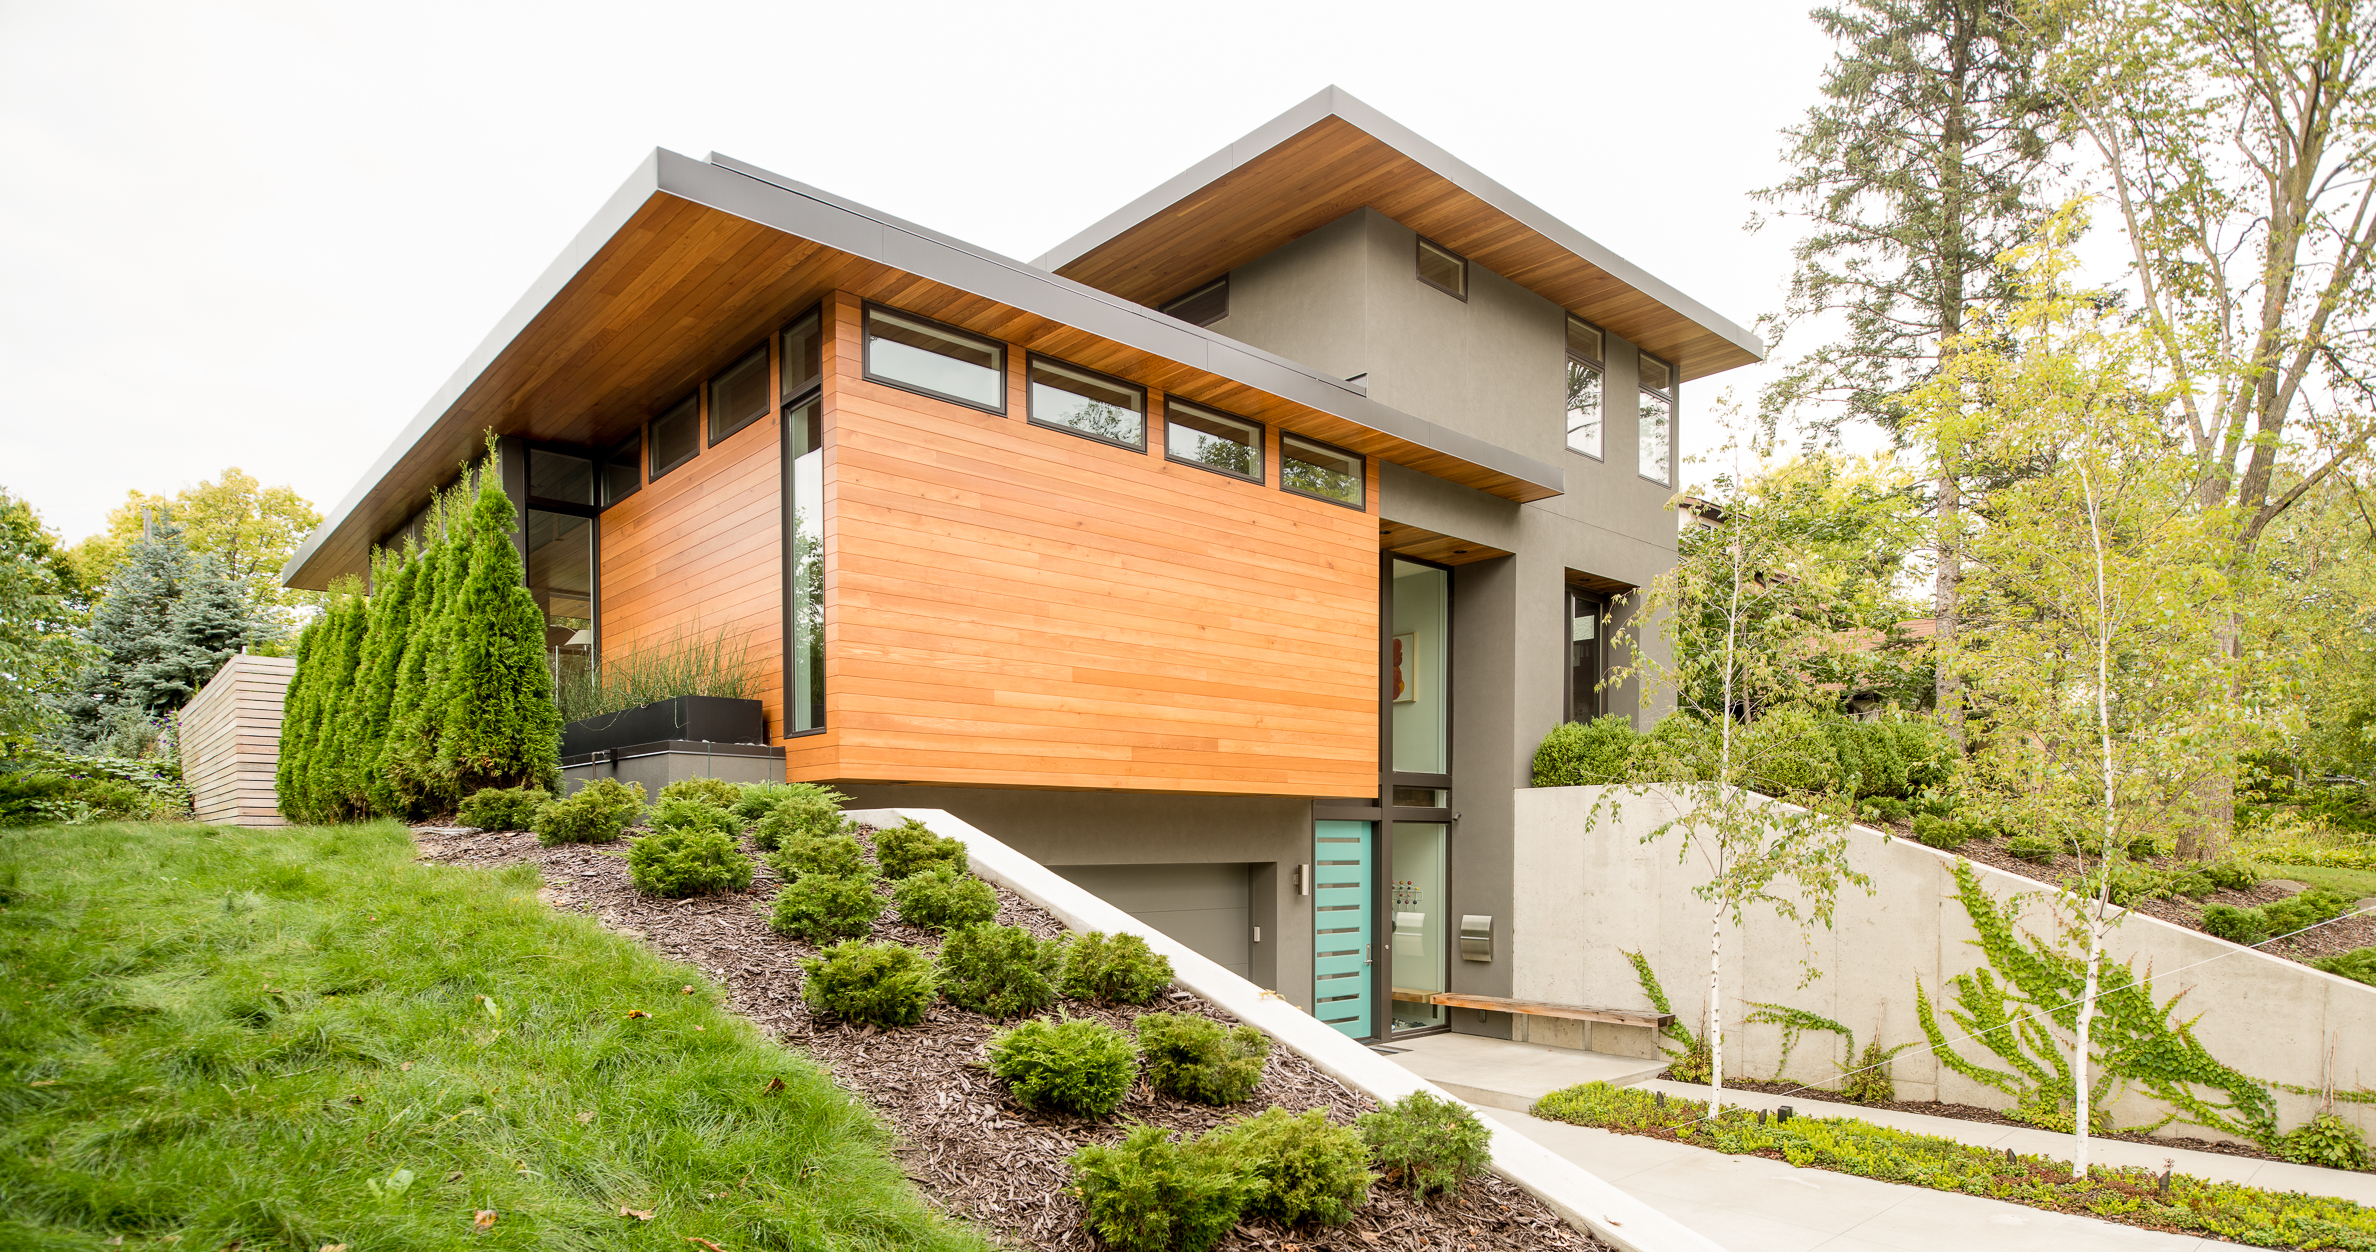 Modern wood and stucco home designed by Christian Dean Architecture